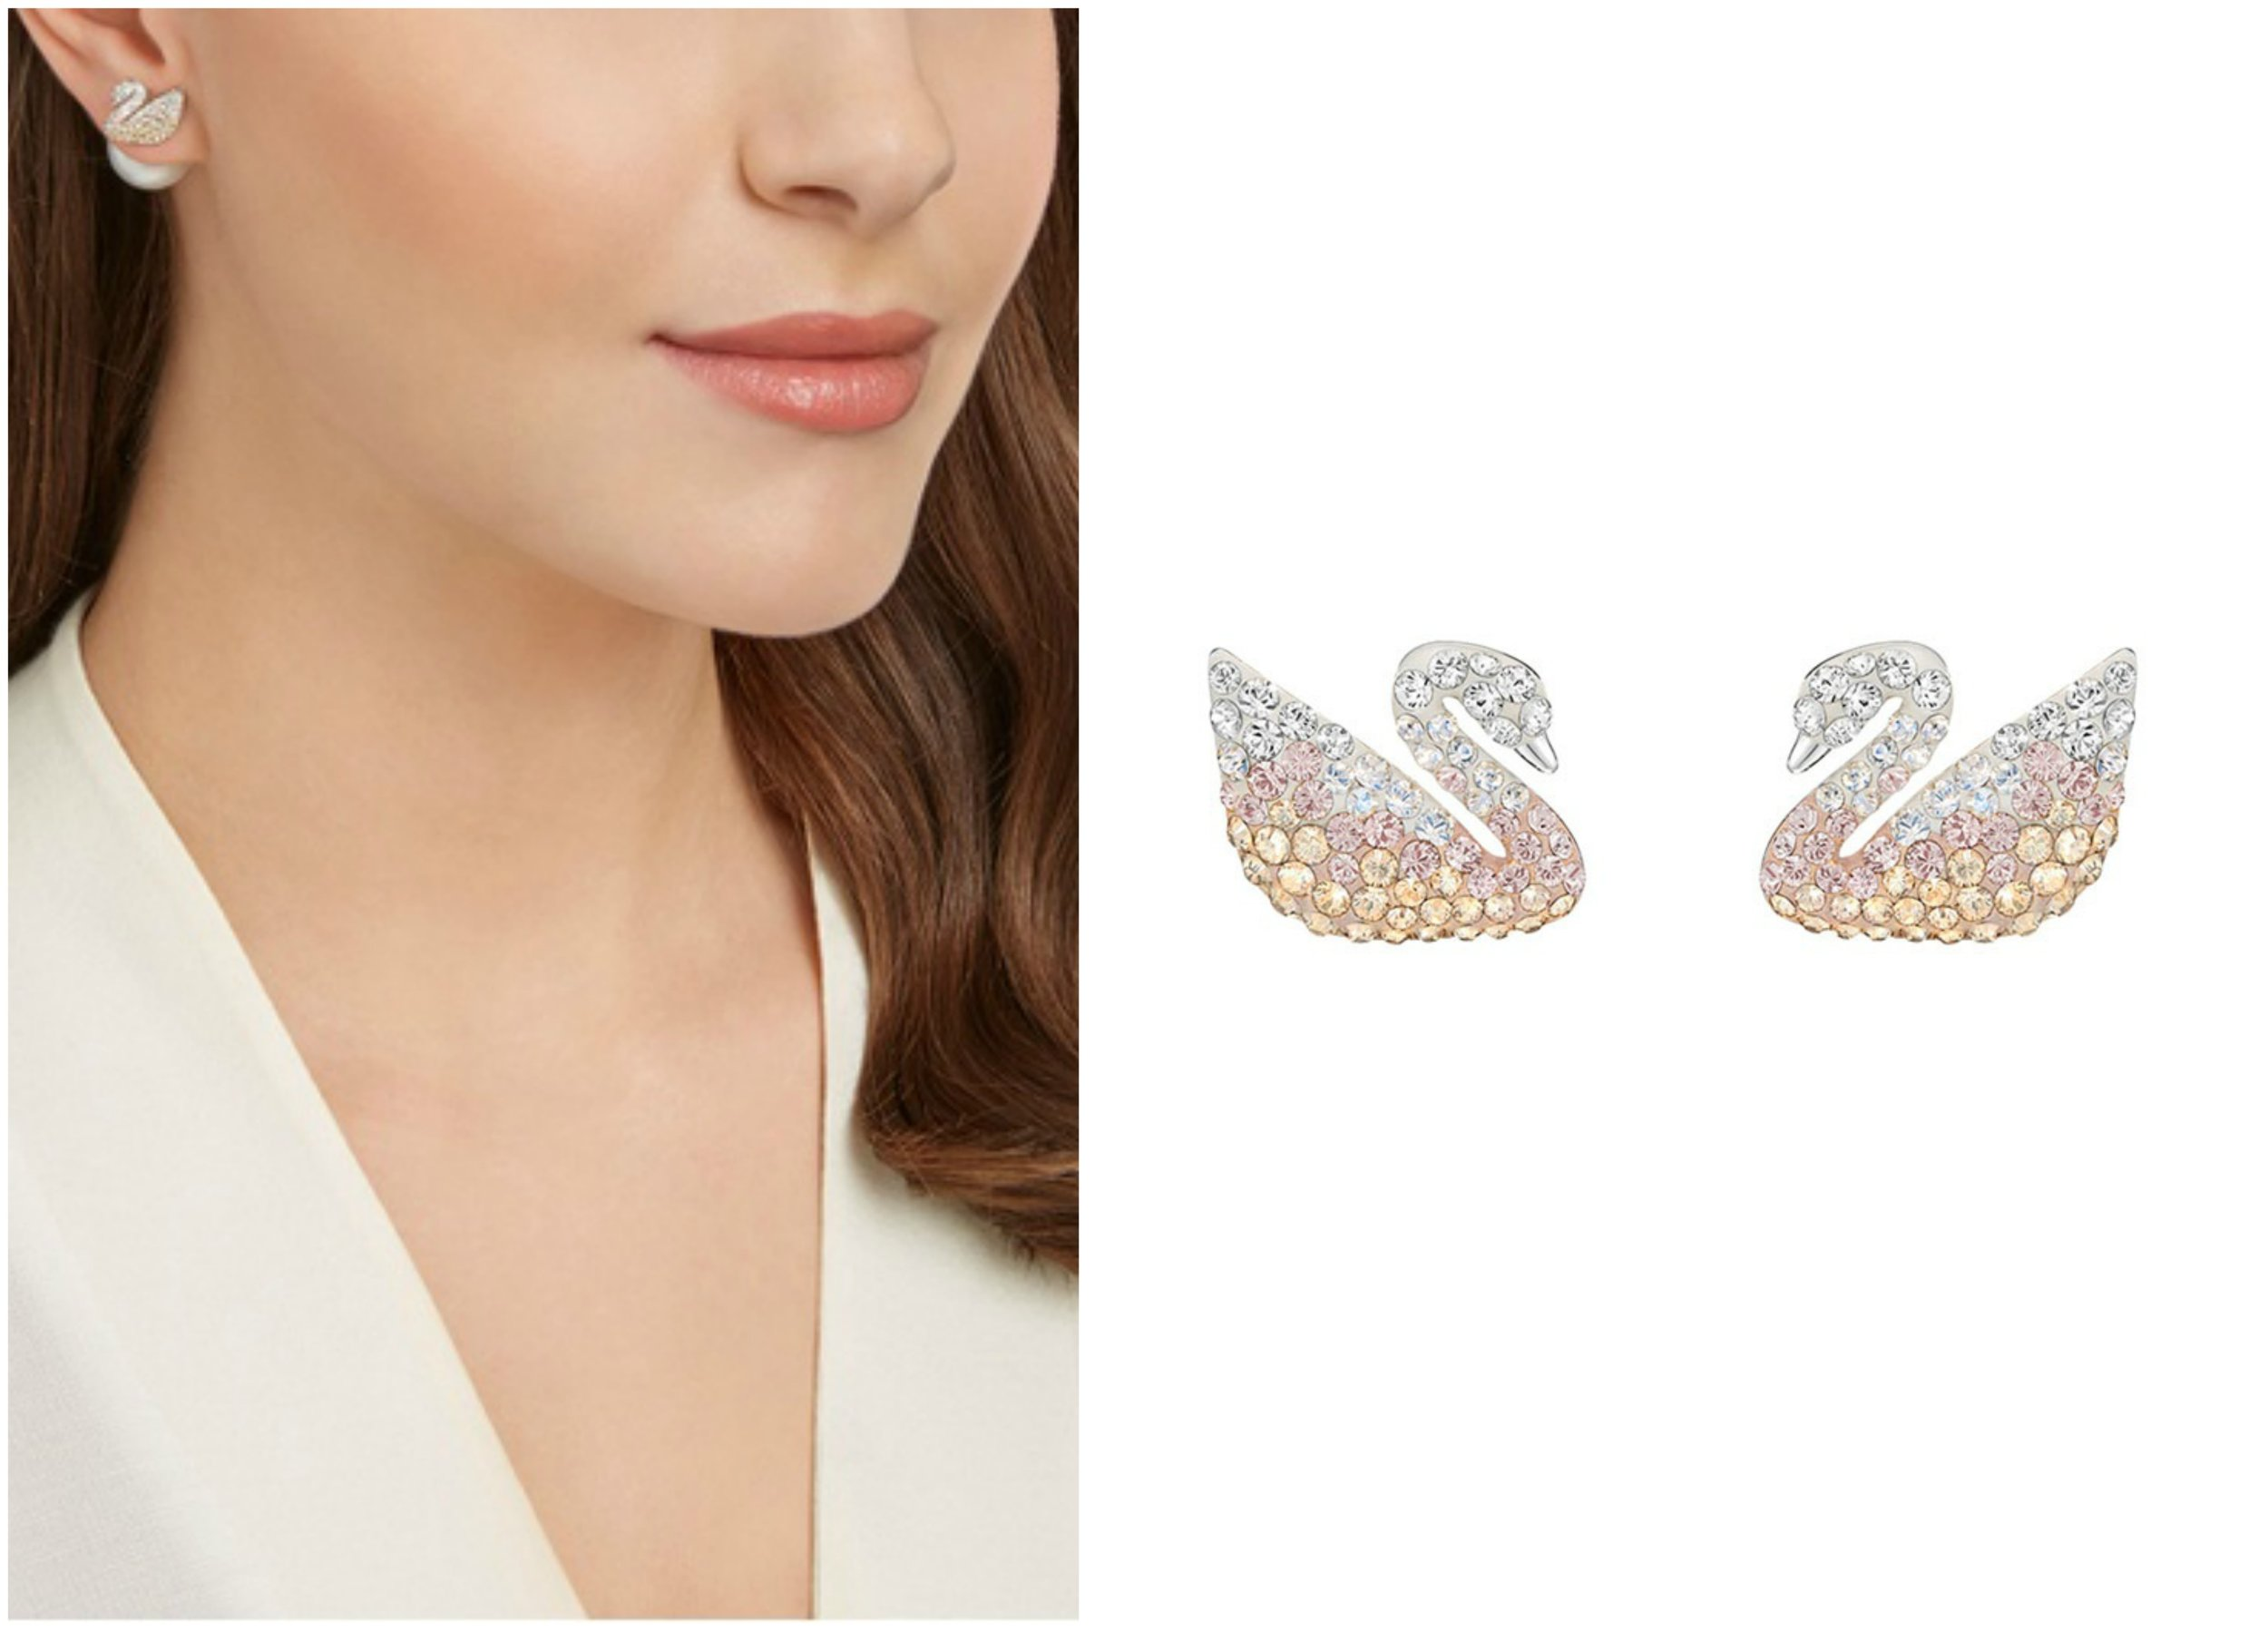 SWAROVSKI Iconic Swan Pendant Earrings